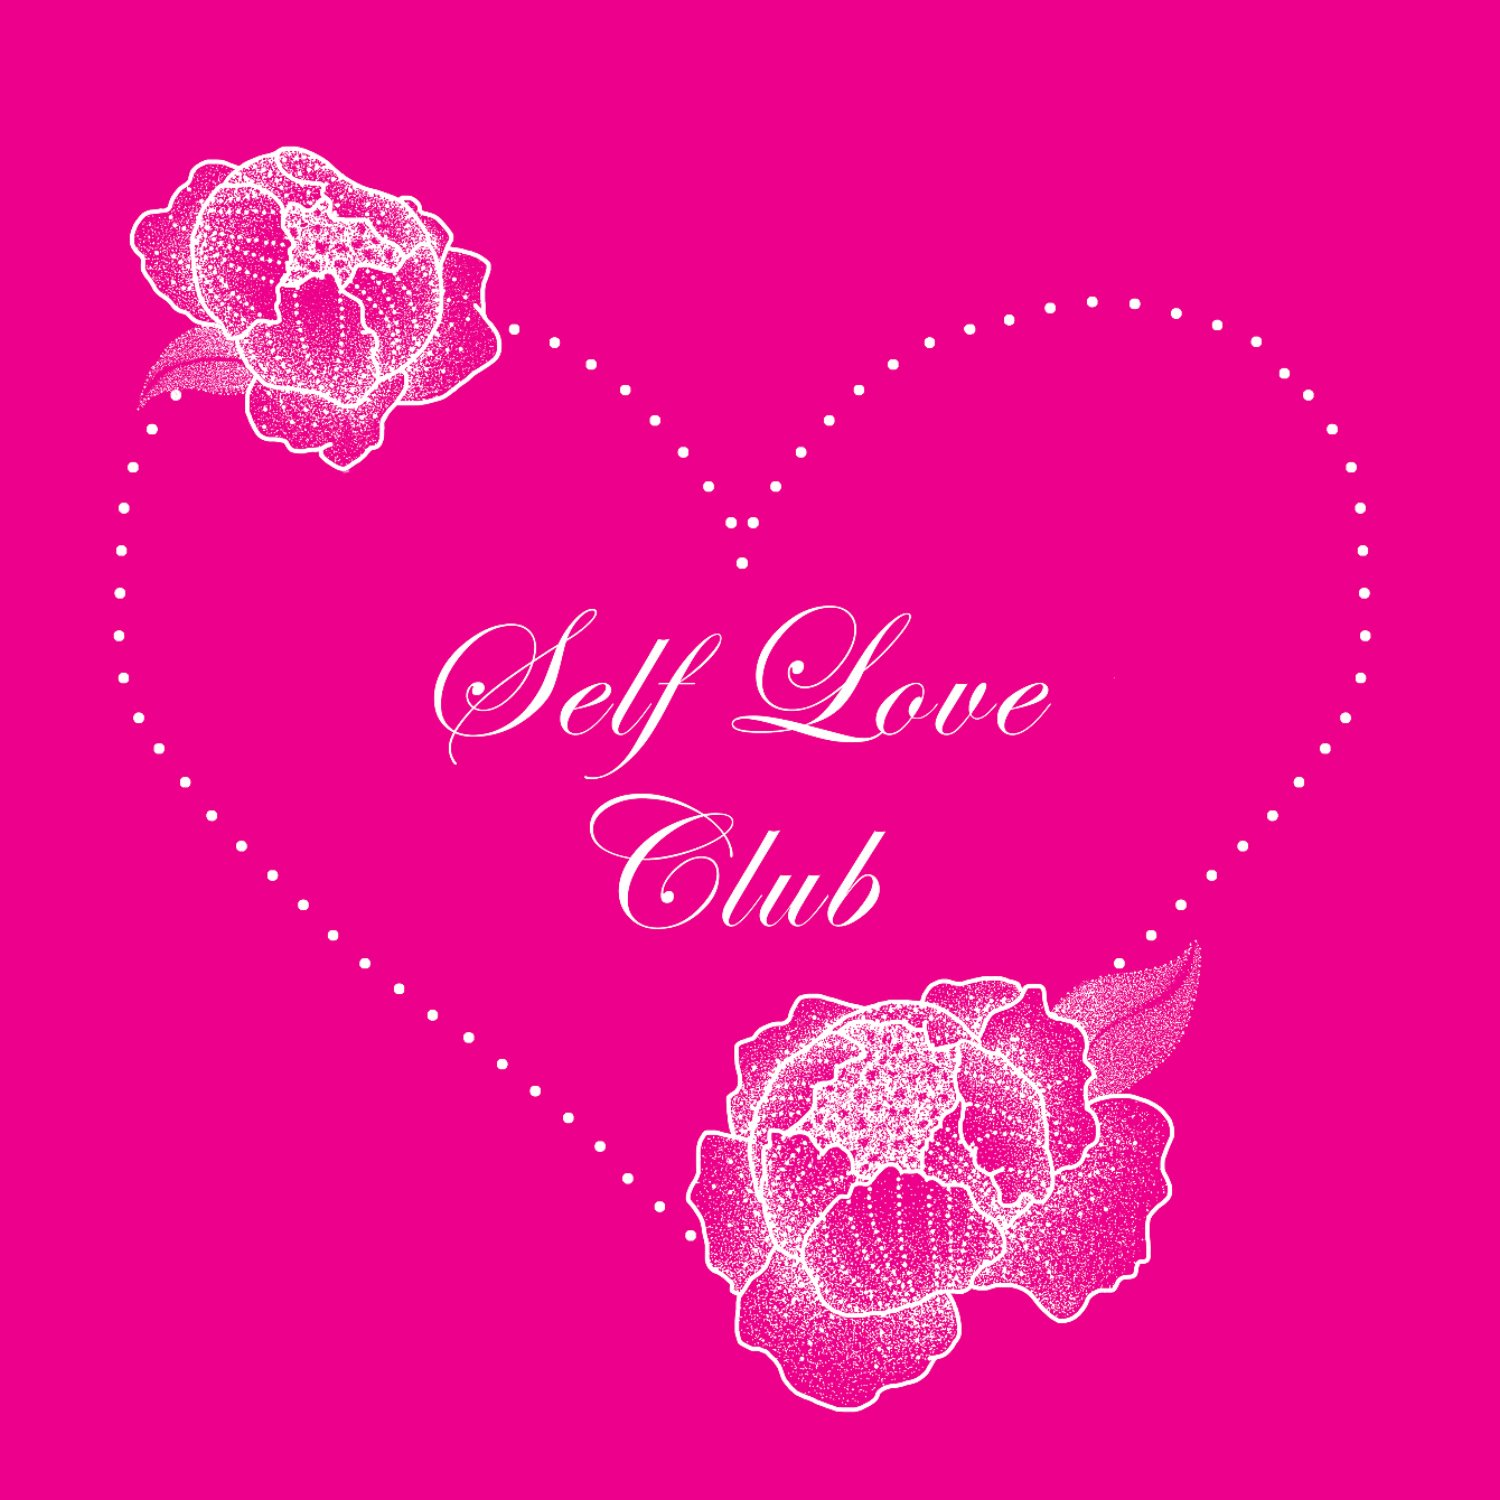 Self Love Club Pink